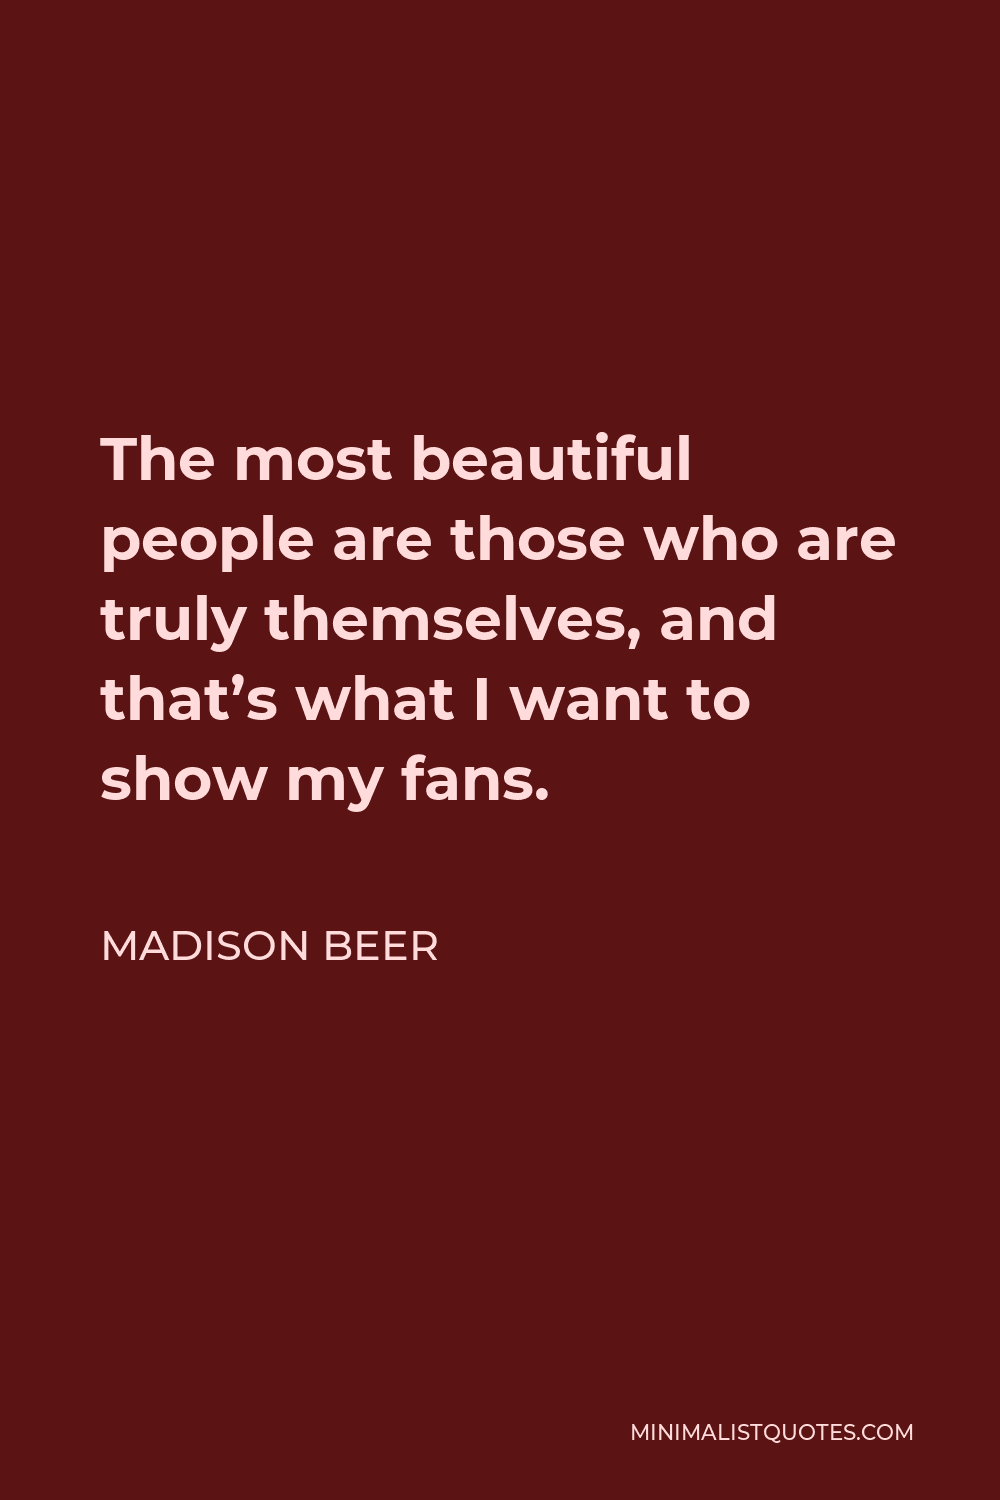 Madison Beer Quote - The most beautiful people are those who are truly themselves, and that's what I want to show my fans.